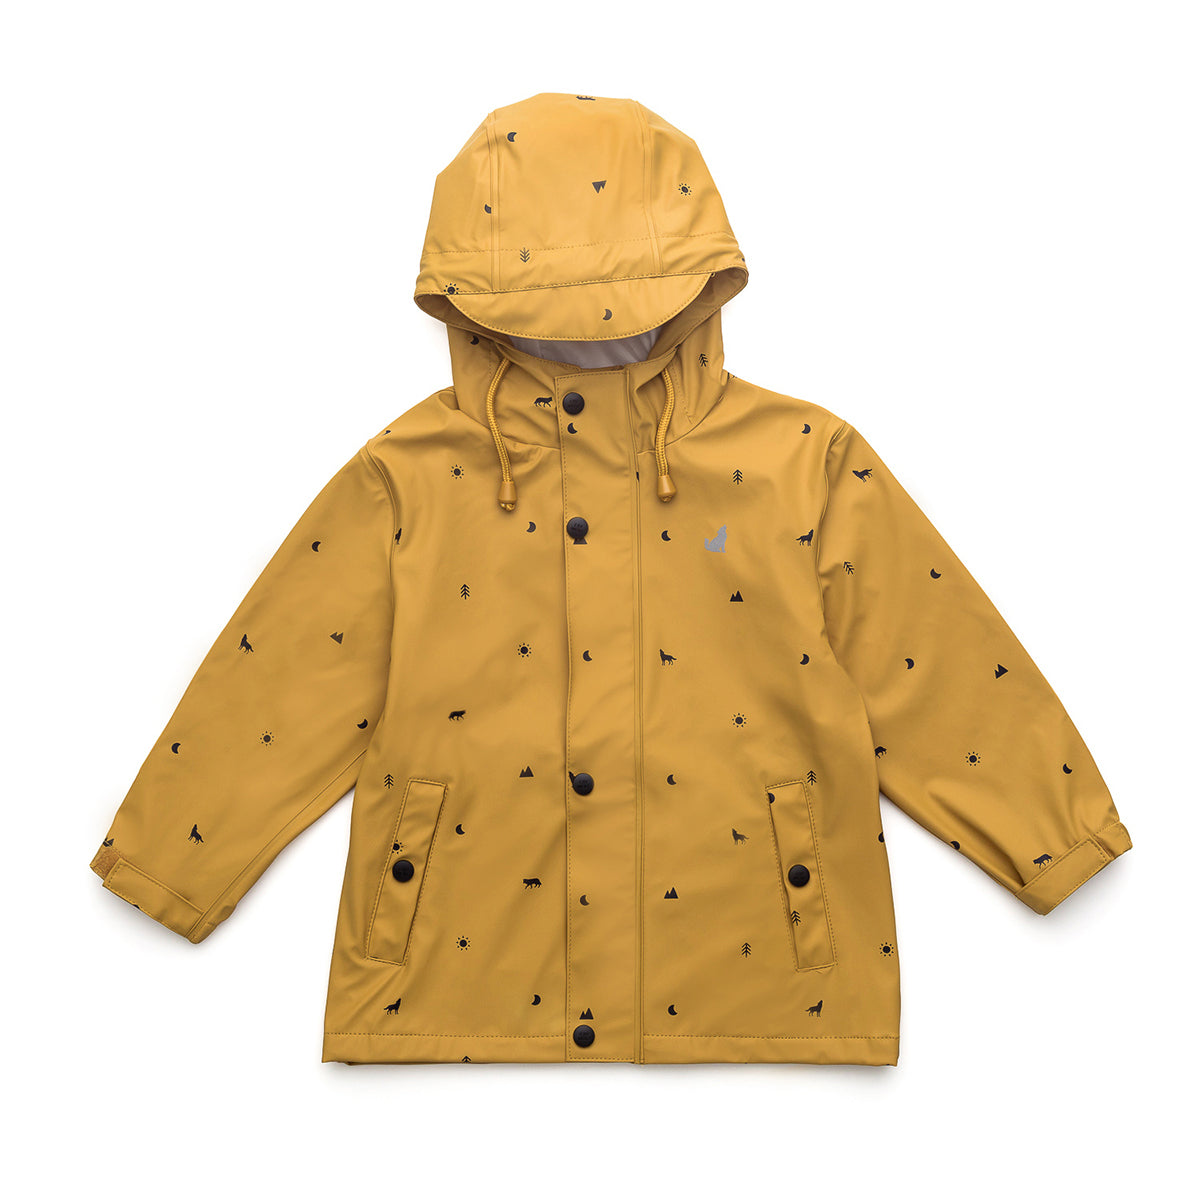 Play Jacket Mustard - size 9-10yrs only